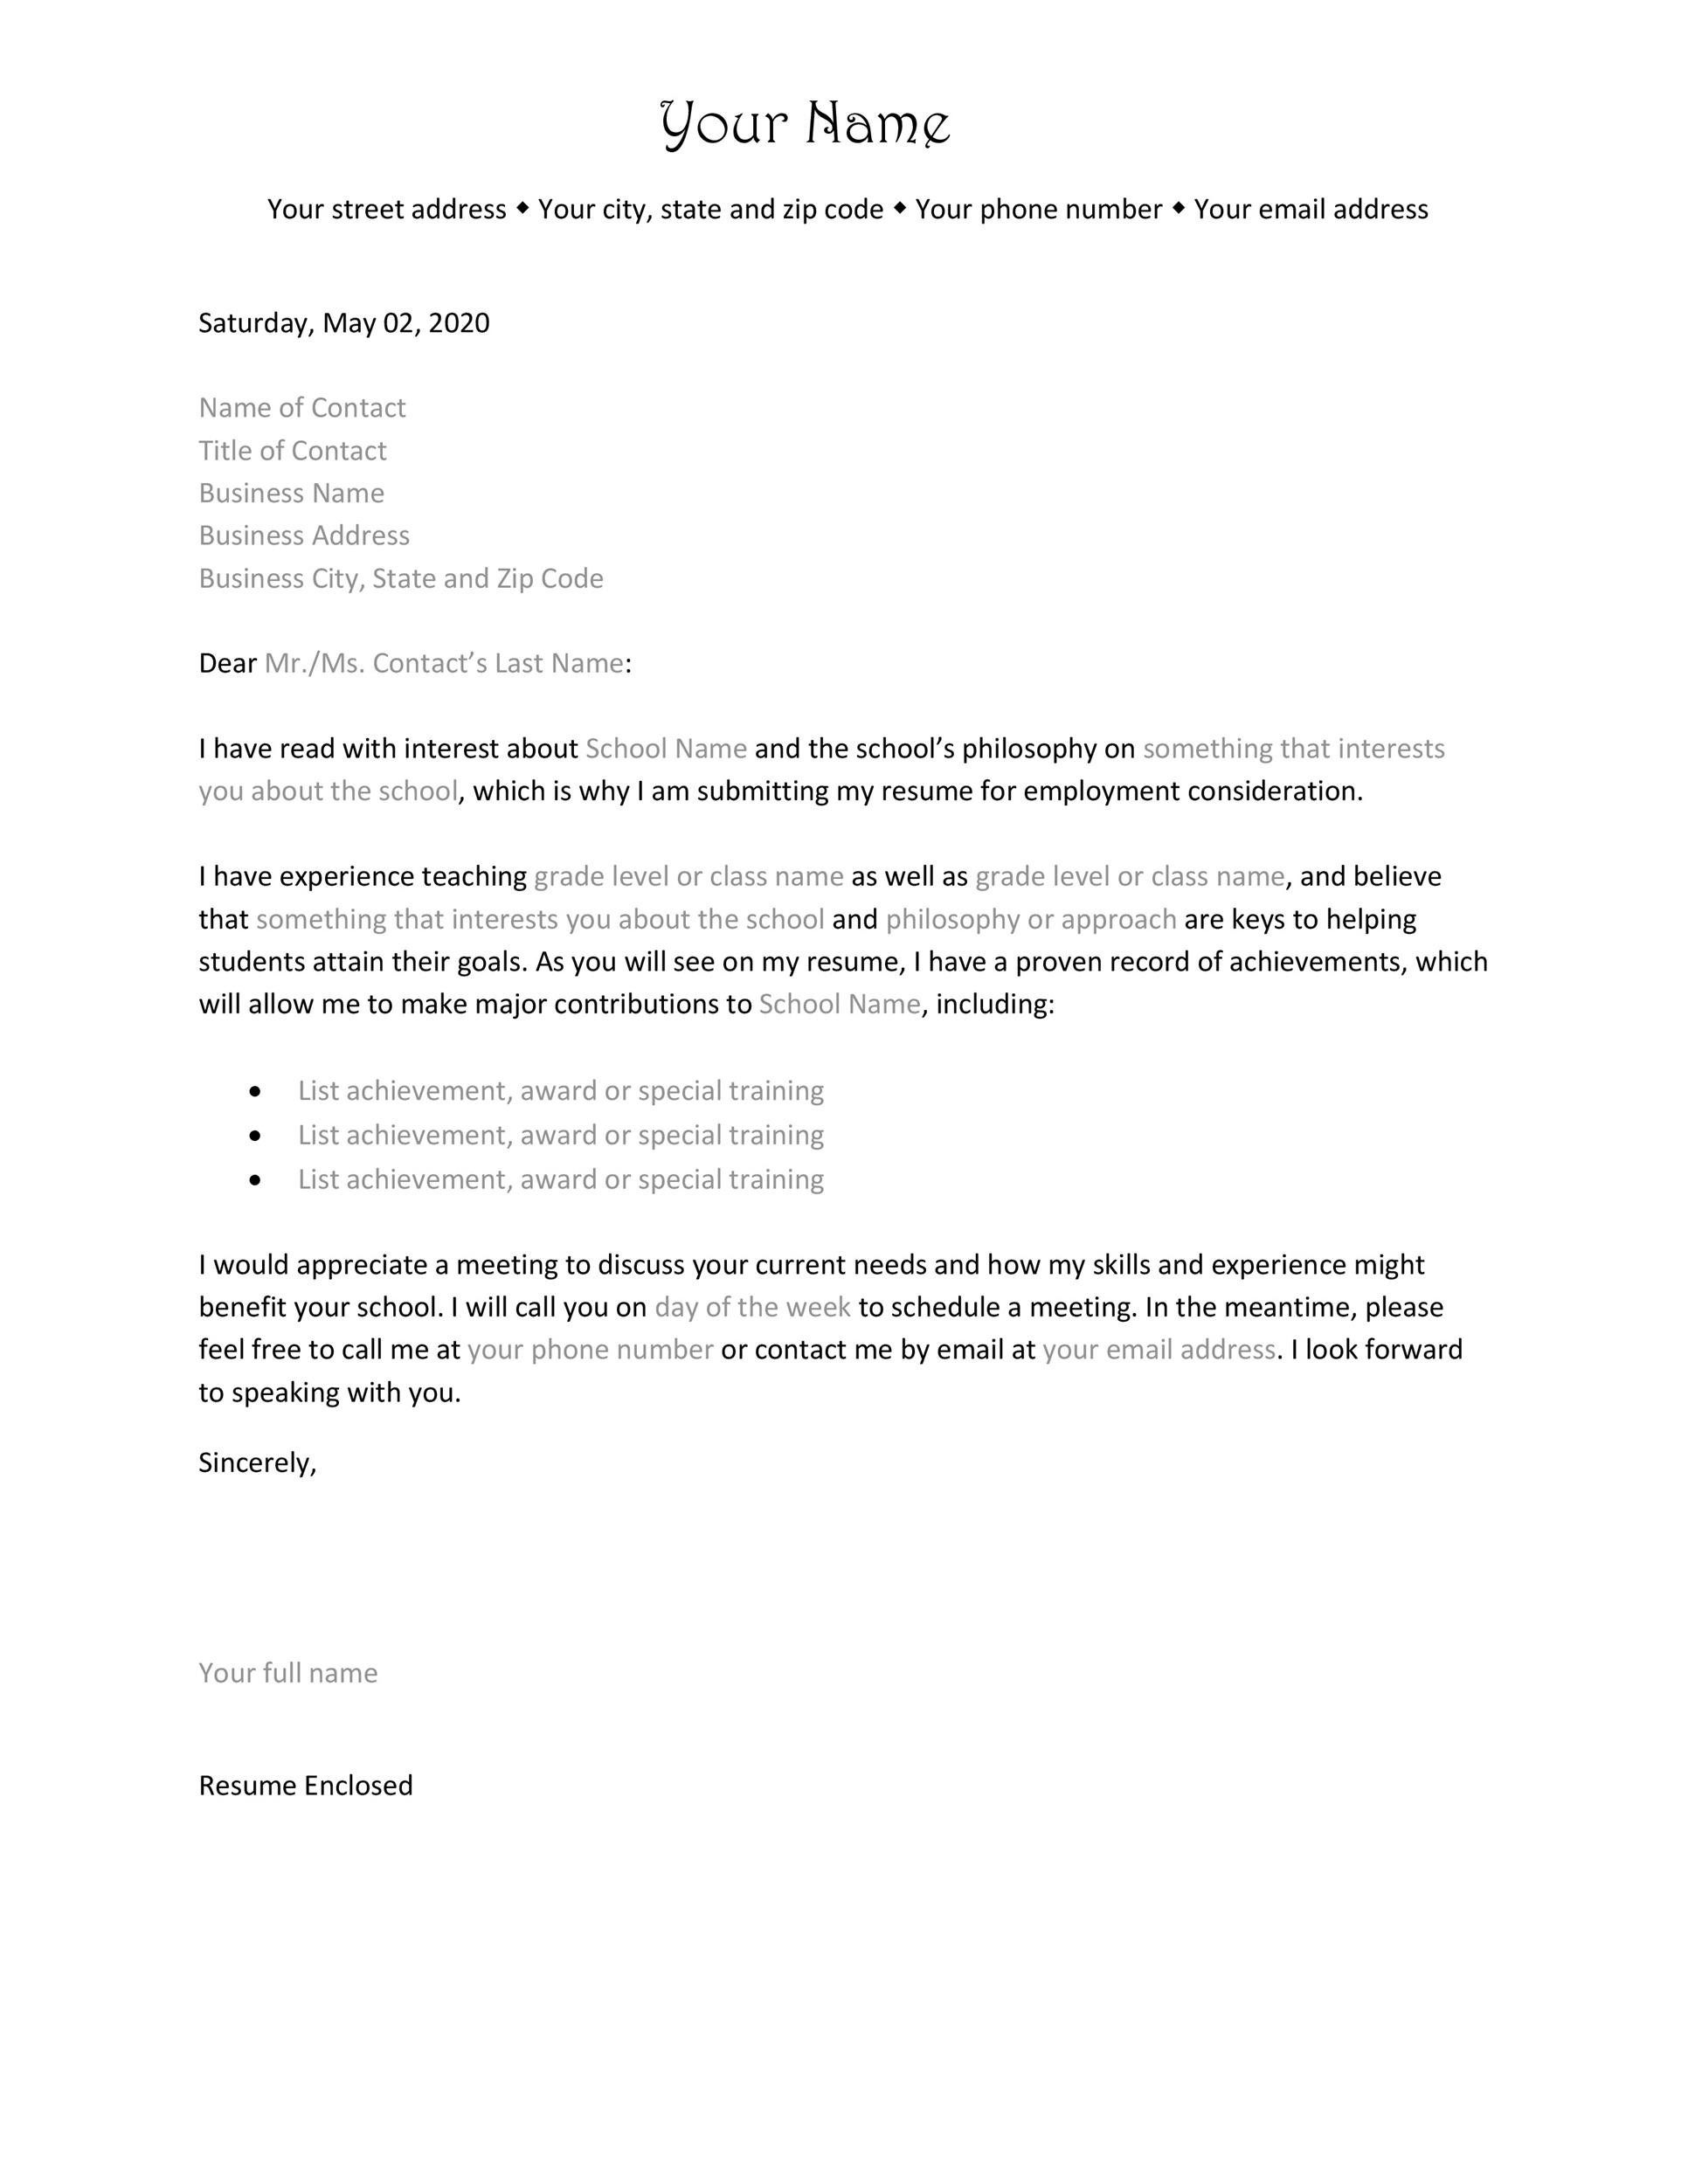 sample cover letter of interest for employment 30 amazing letter of interest samples templates